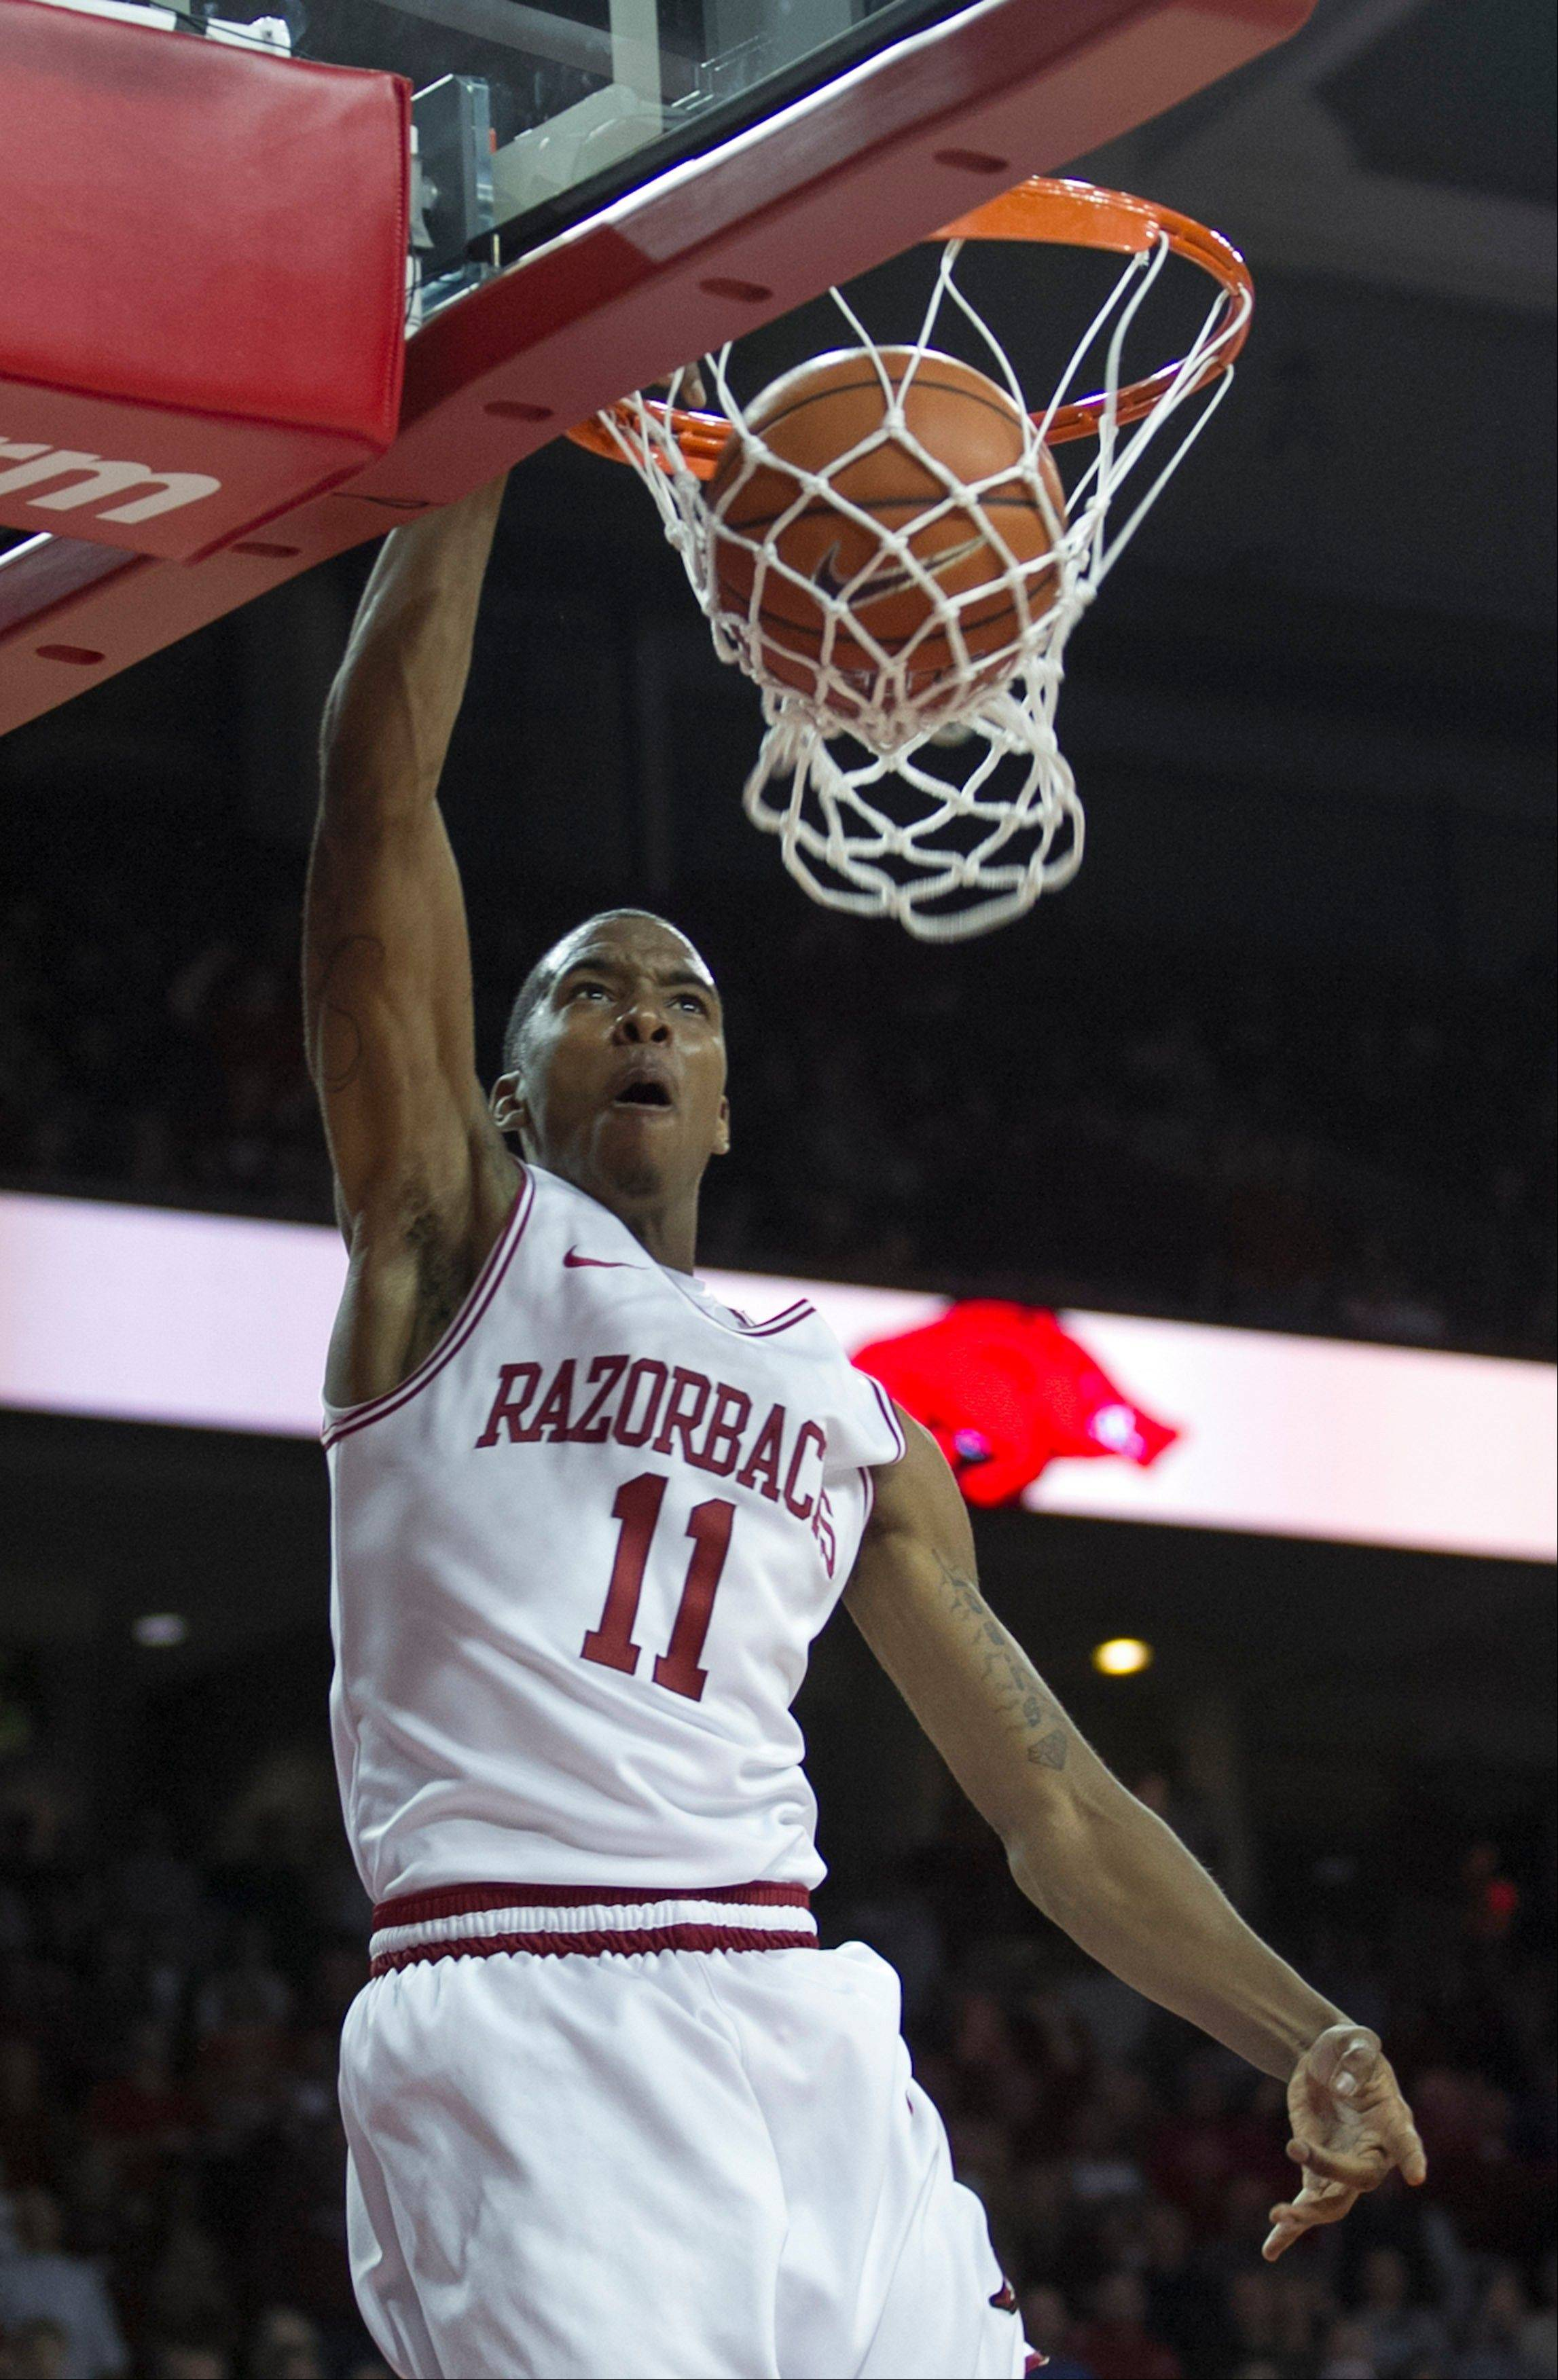 Arkansas' BJ Young (11) dunks during the second half an NCAA college basketball game against No. 2 Florida in Fayetteville, Ark., Tuesday Feb. 5, 2013. Arkansas won 80-69.